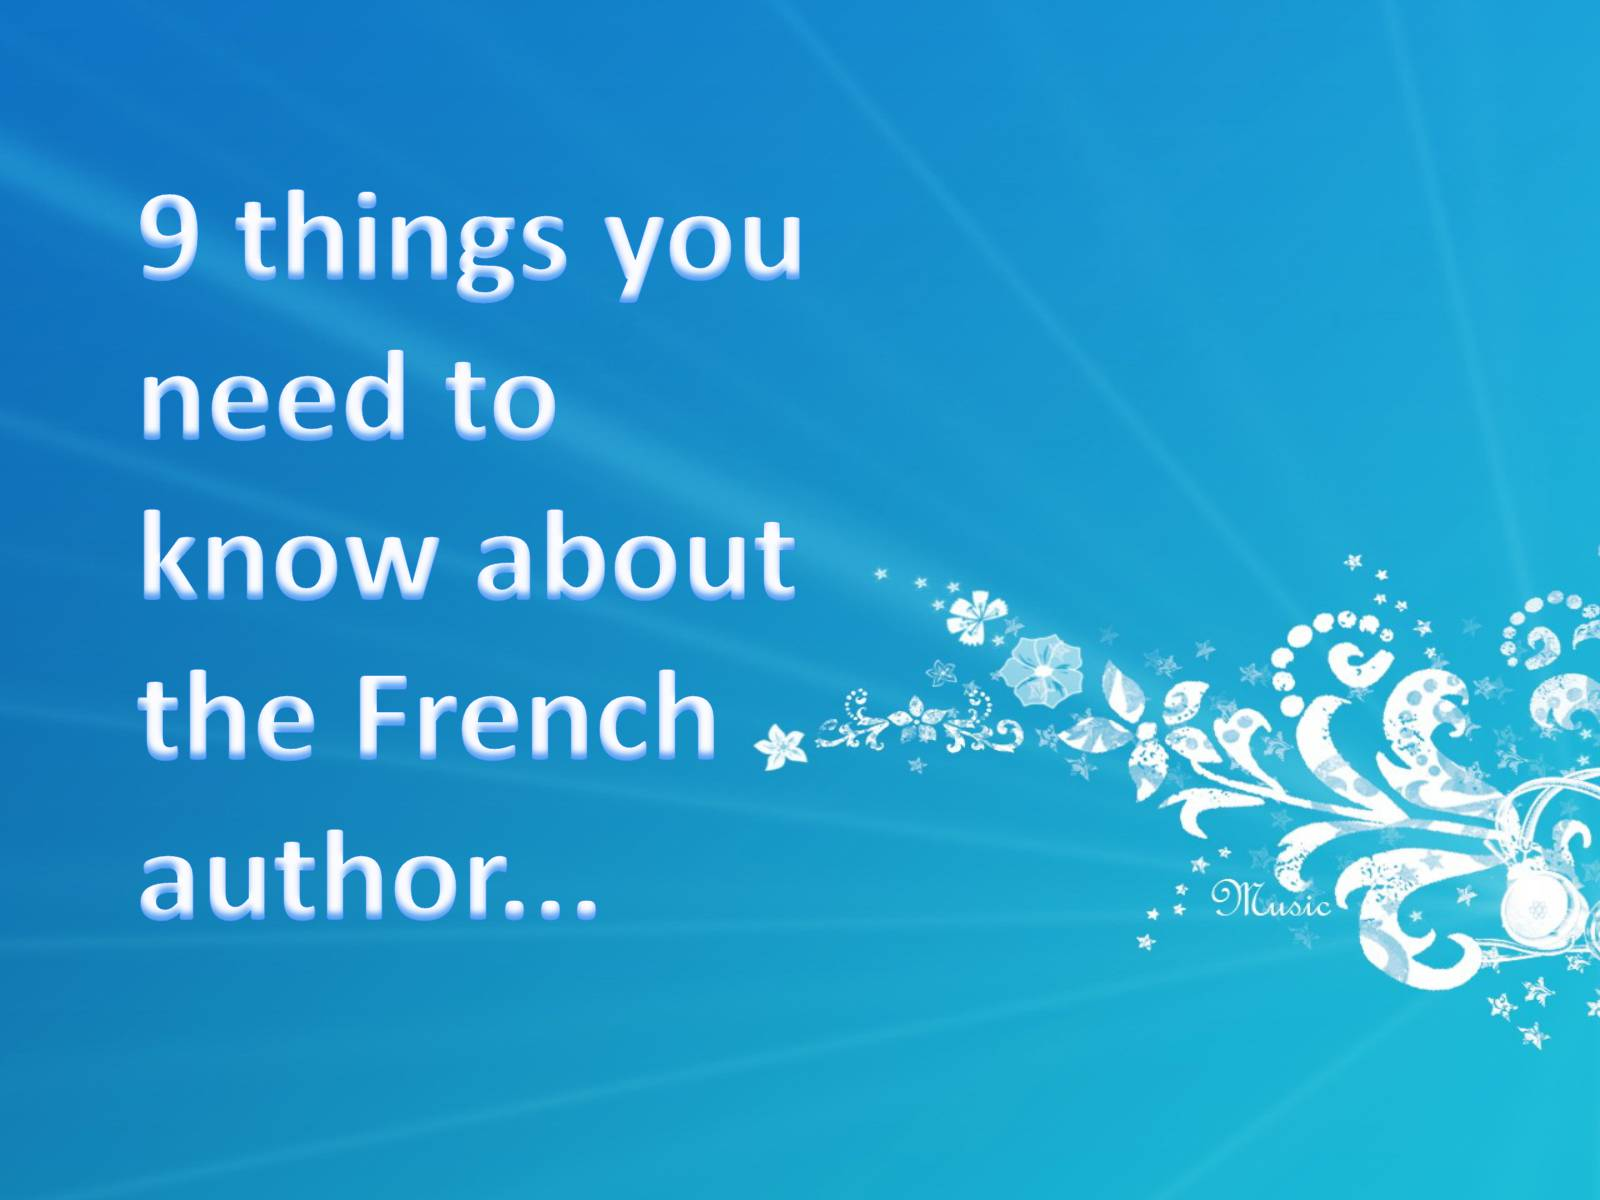 Презентація на тему «9 things you need to know about the French author» - Слайд #1